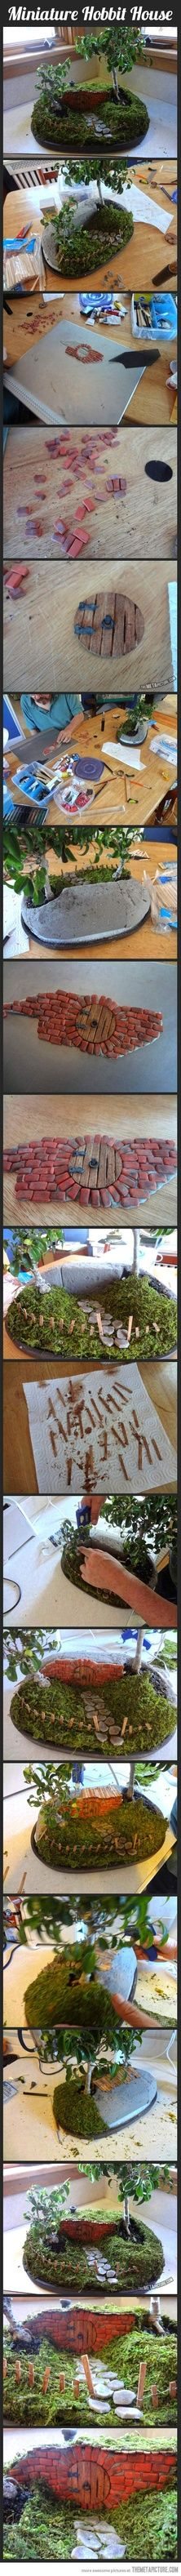 72791c877e2dc067e3e07588a10df8fa.jpg (222×3155)....miniature hobbit house to make!